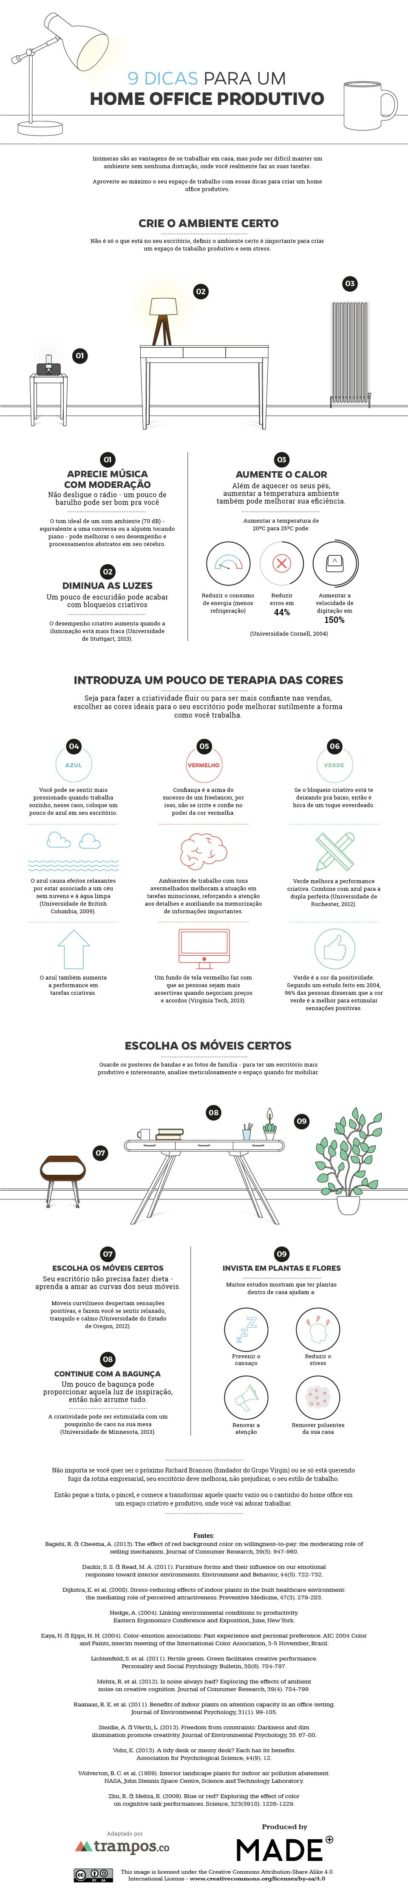 infográfico do home office produtivo